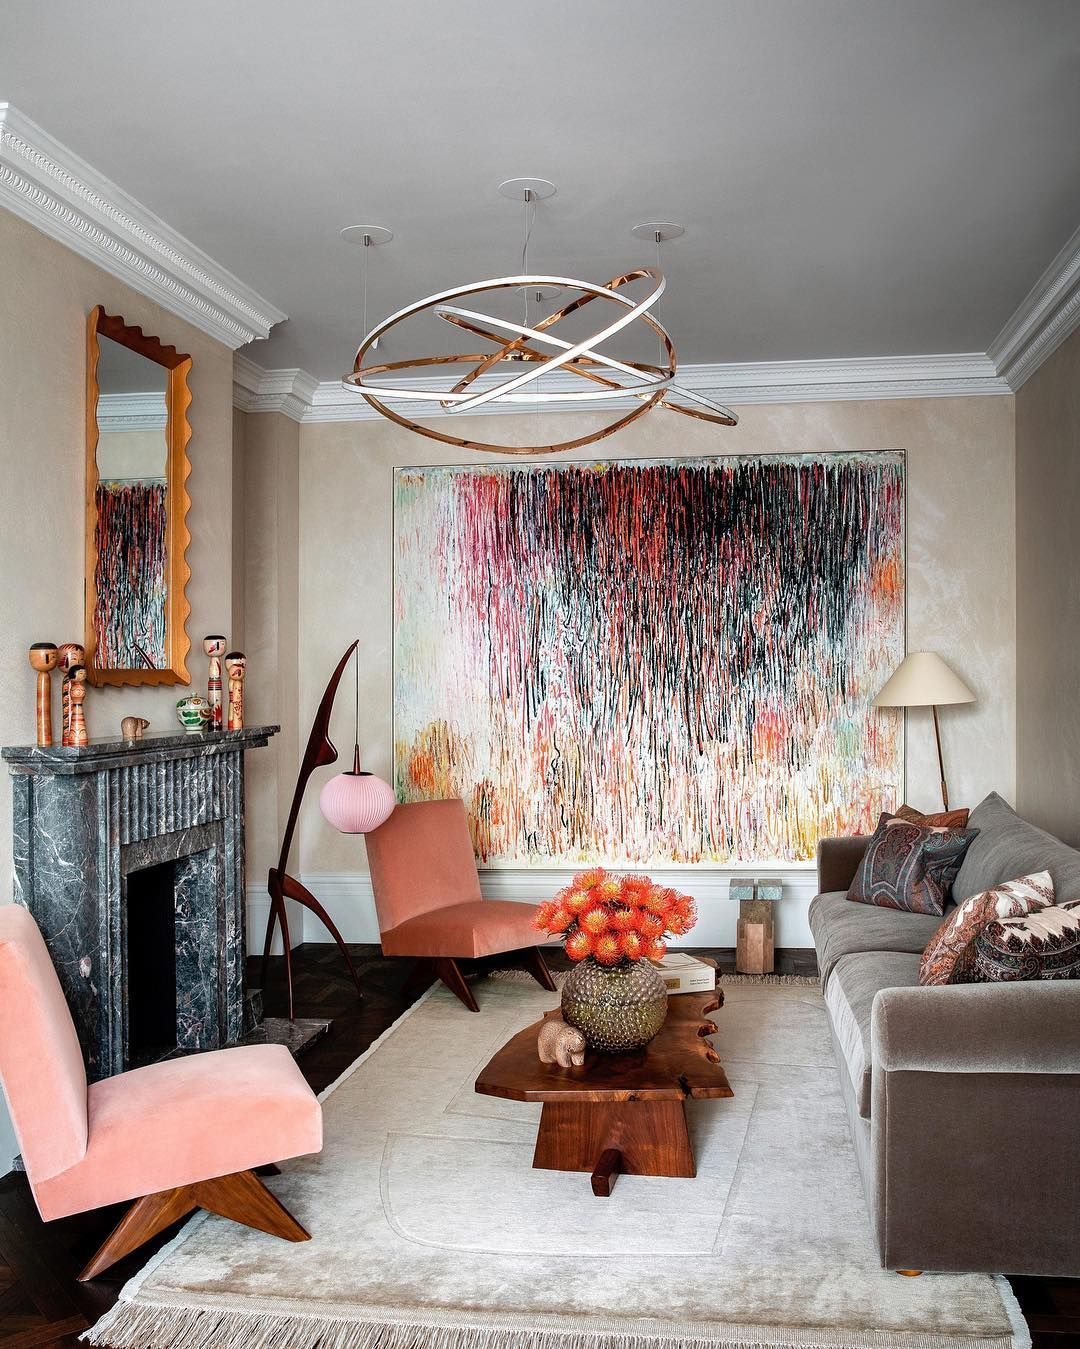 "Family Rooms We Love: Architectural Digest On Instagram: """"We Love To Entertain"